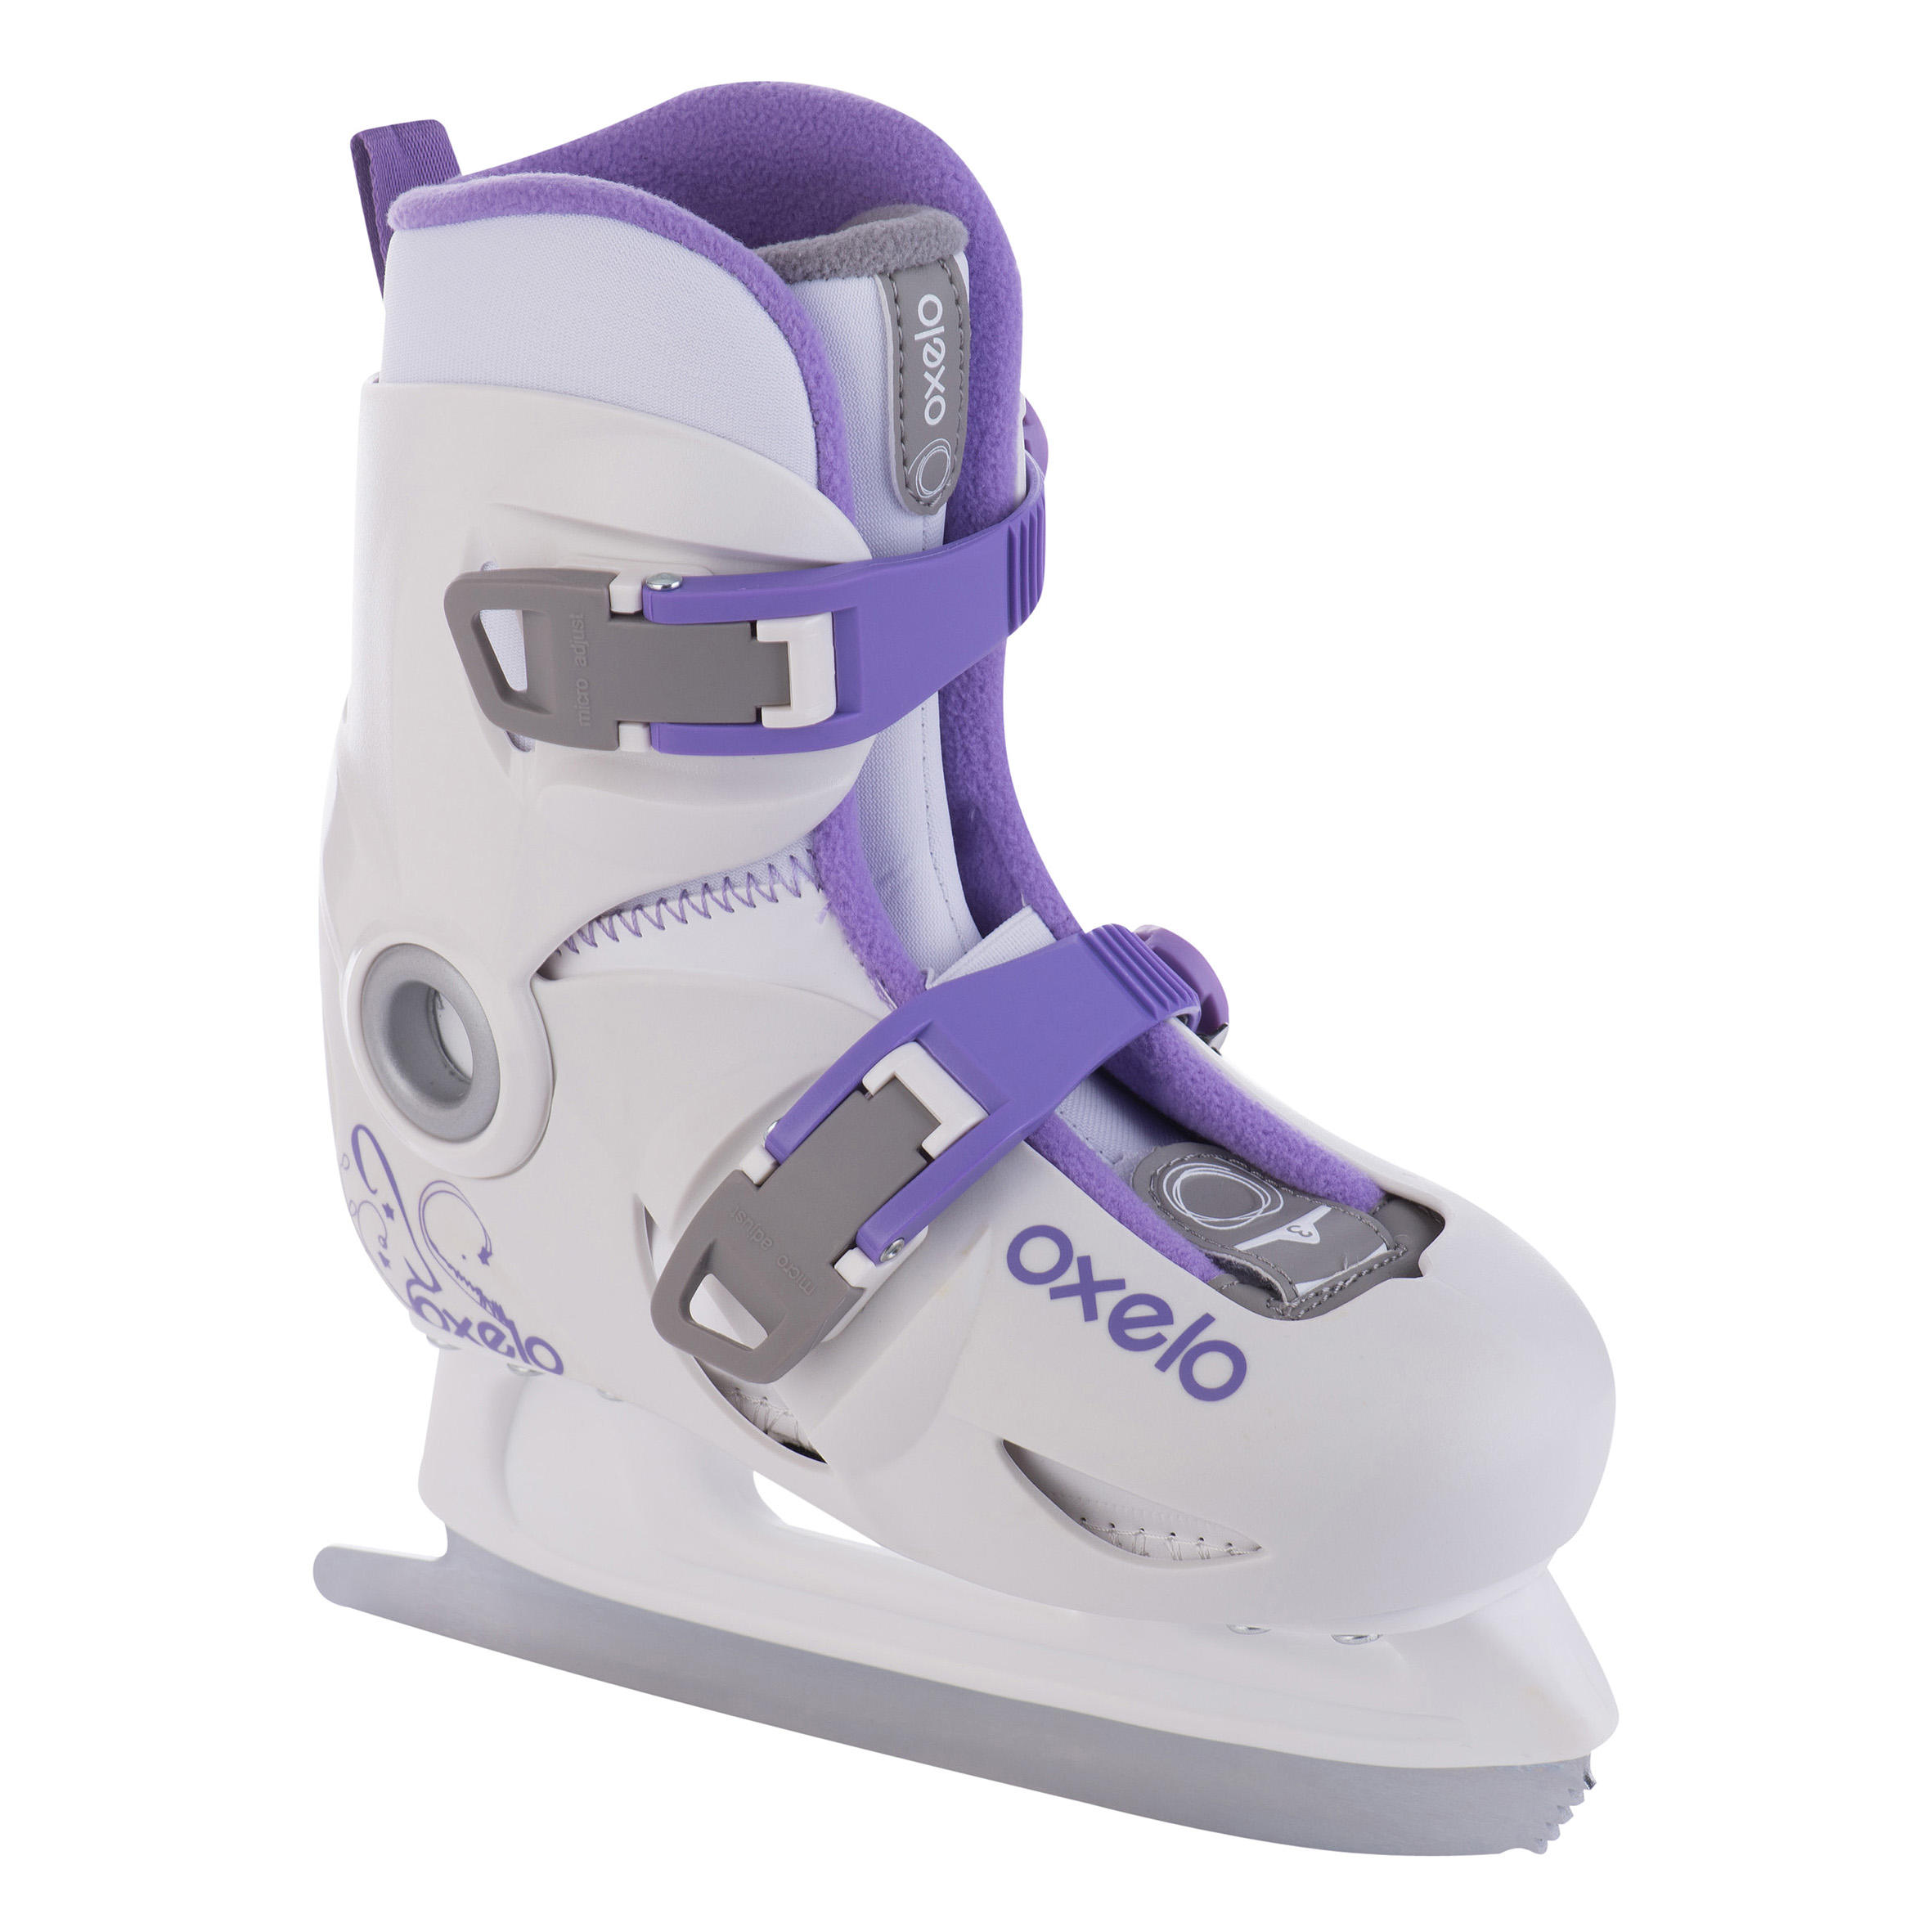 Play 3 Kids' Ice Skates - White